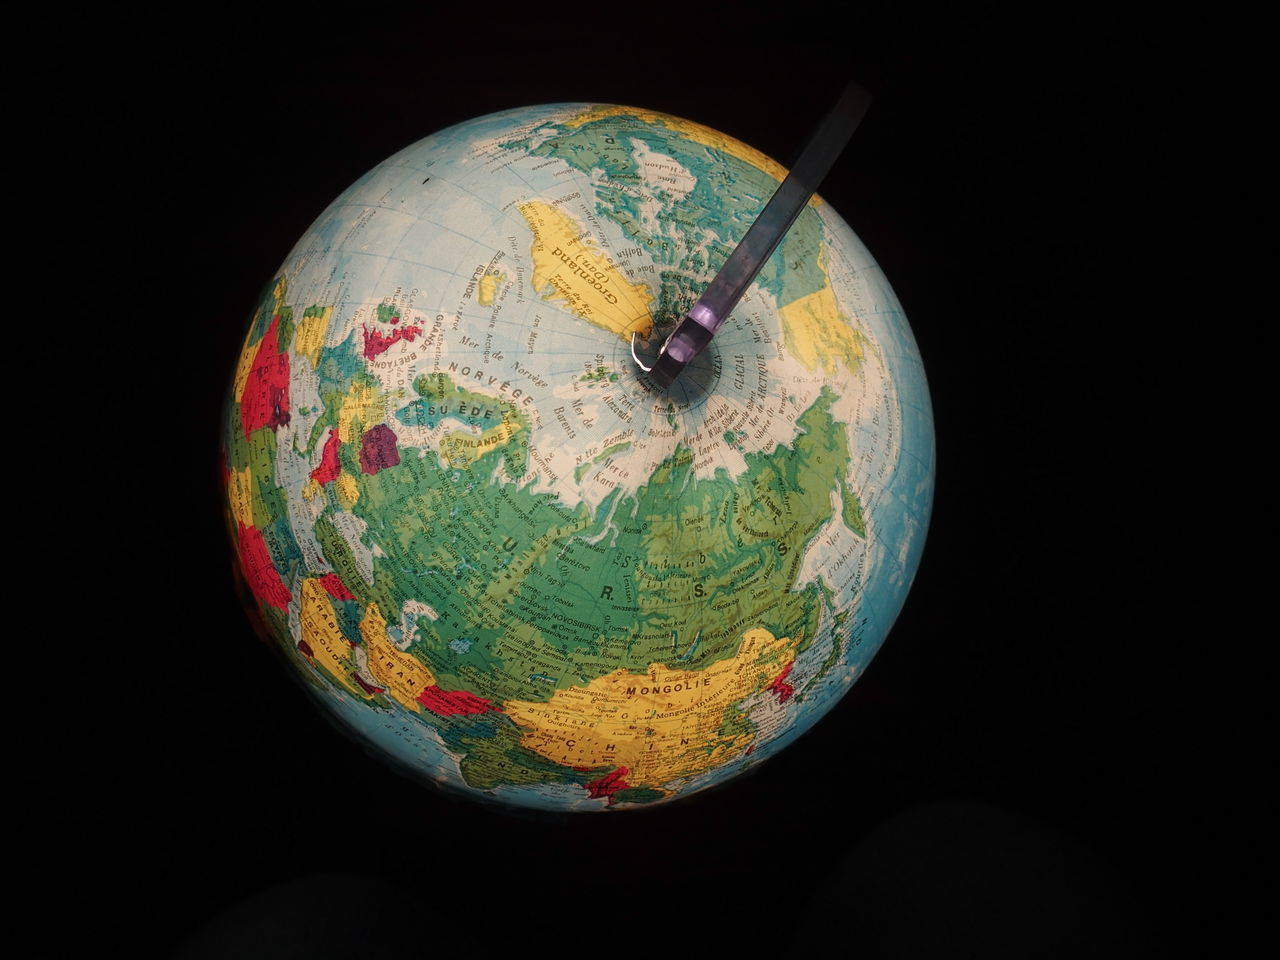 planet earth, globe - man made object, planet - space, physical geography, space, map, black background, no people, science, sea, close-up, water, nature, astronomy, day